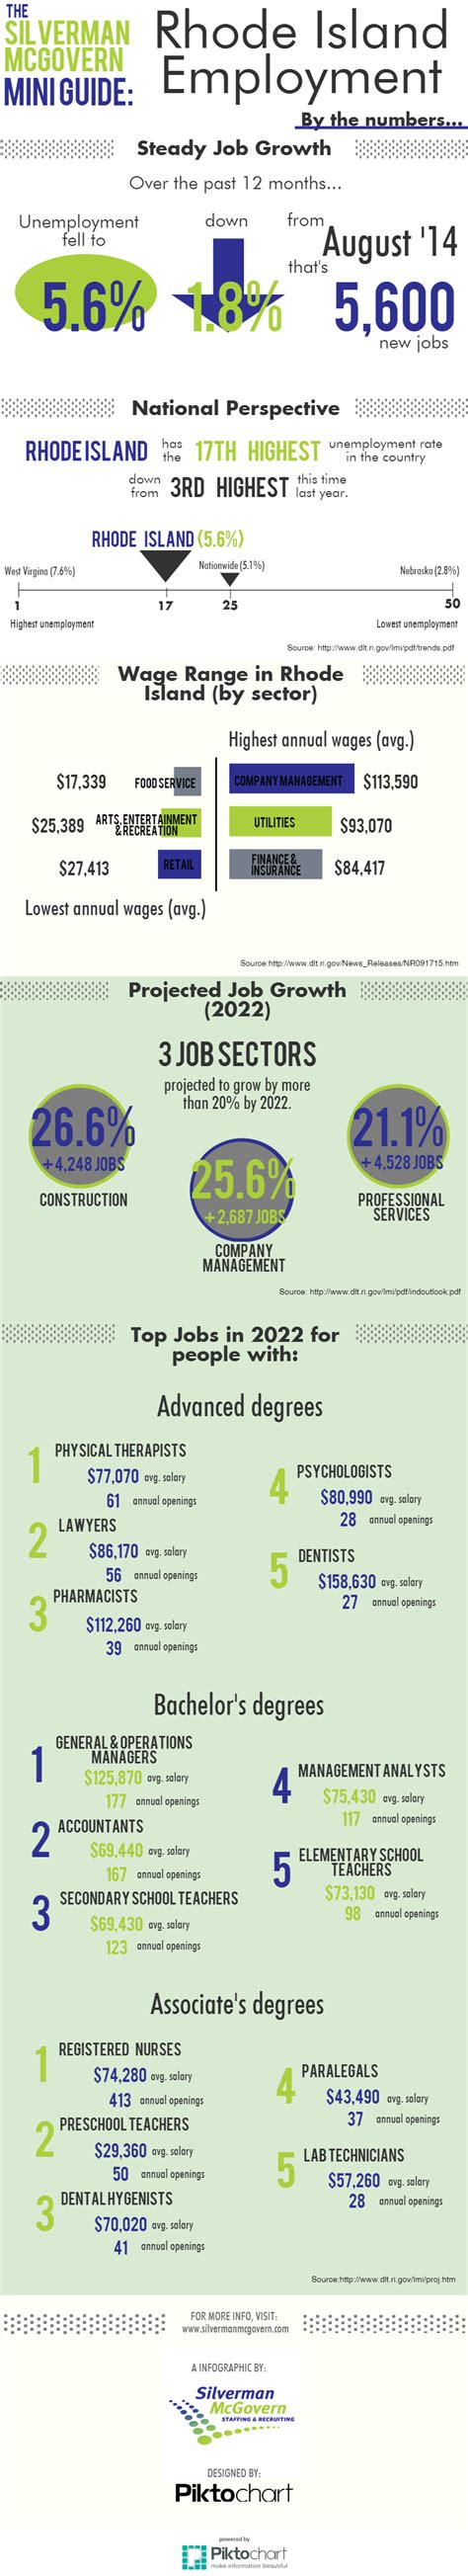 graphic design certificate rhode island rhode island employment by the numbers infographic